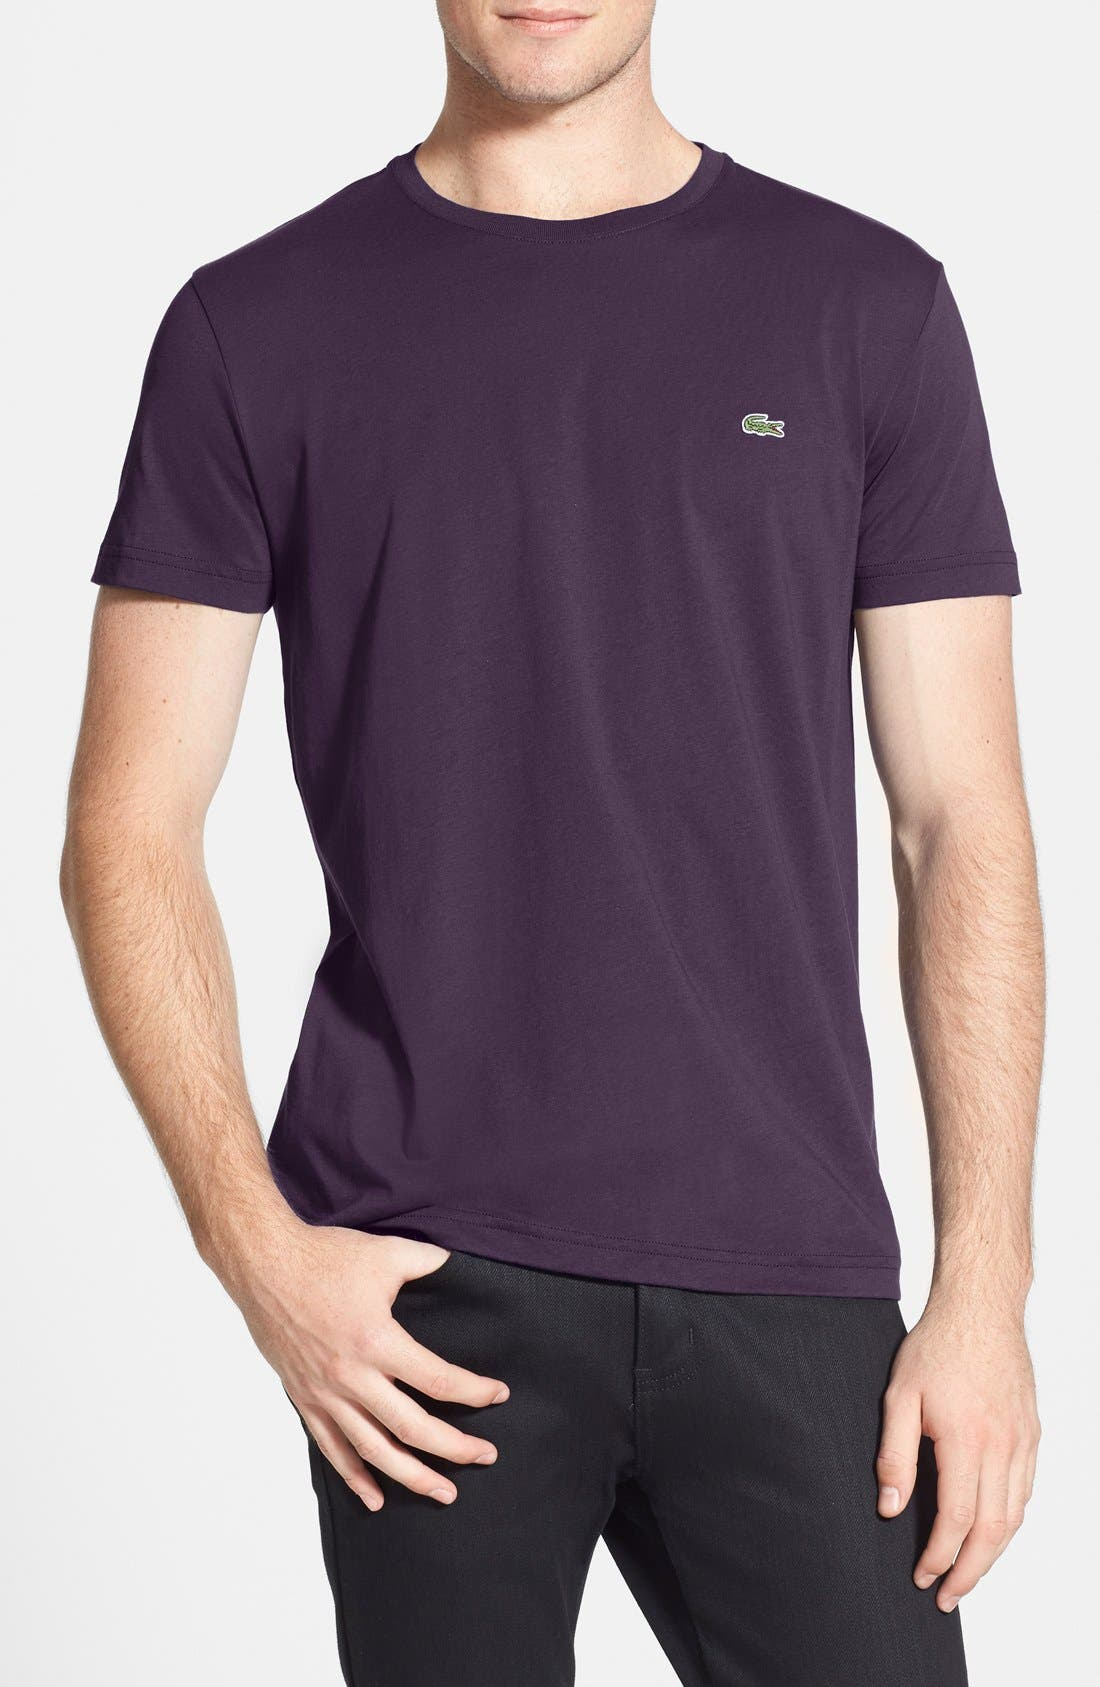 Alternate Image 1 Selected - Lacoste Pima Cotton Crewneck T-Shirt